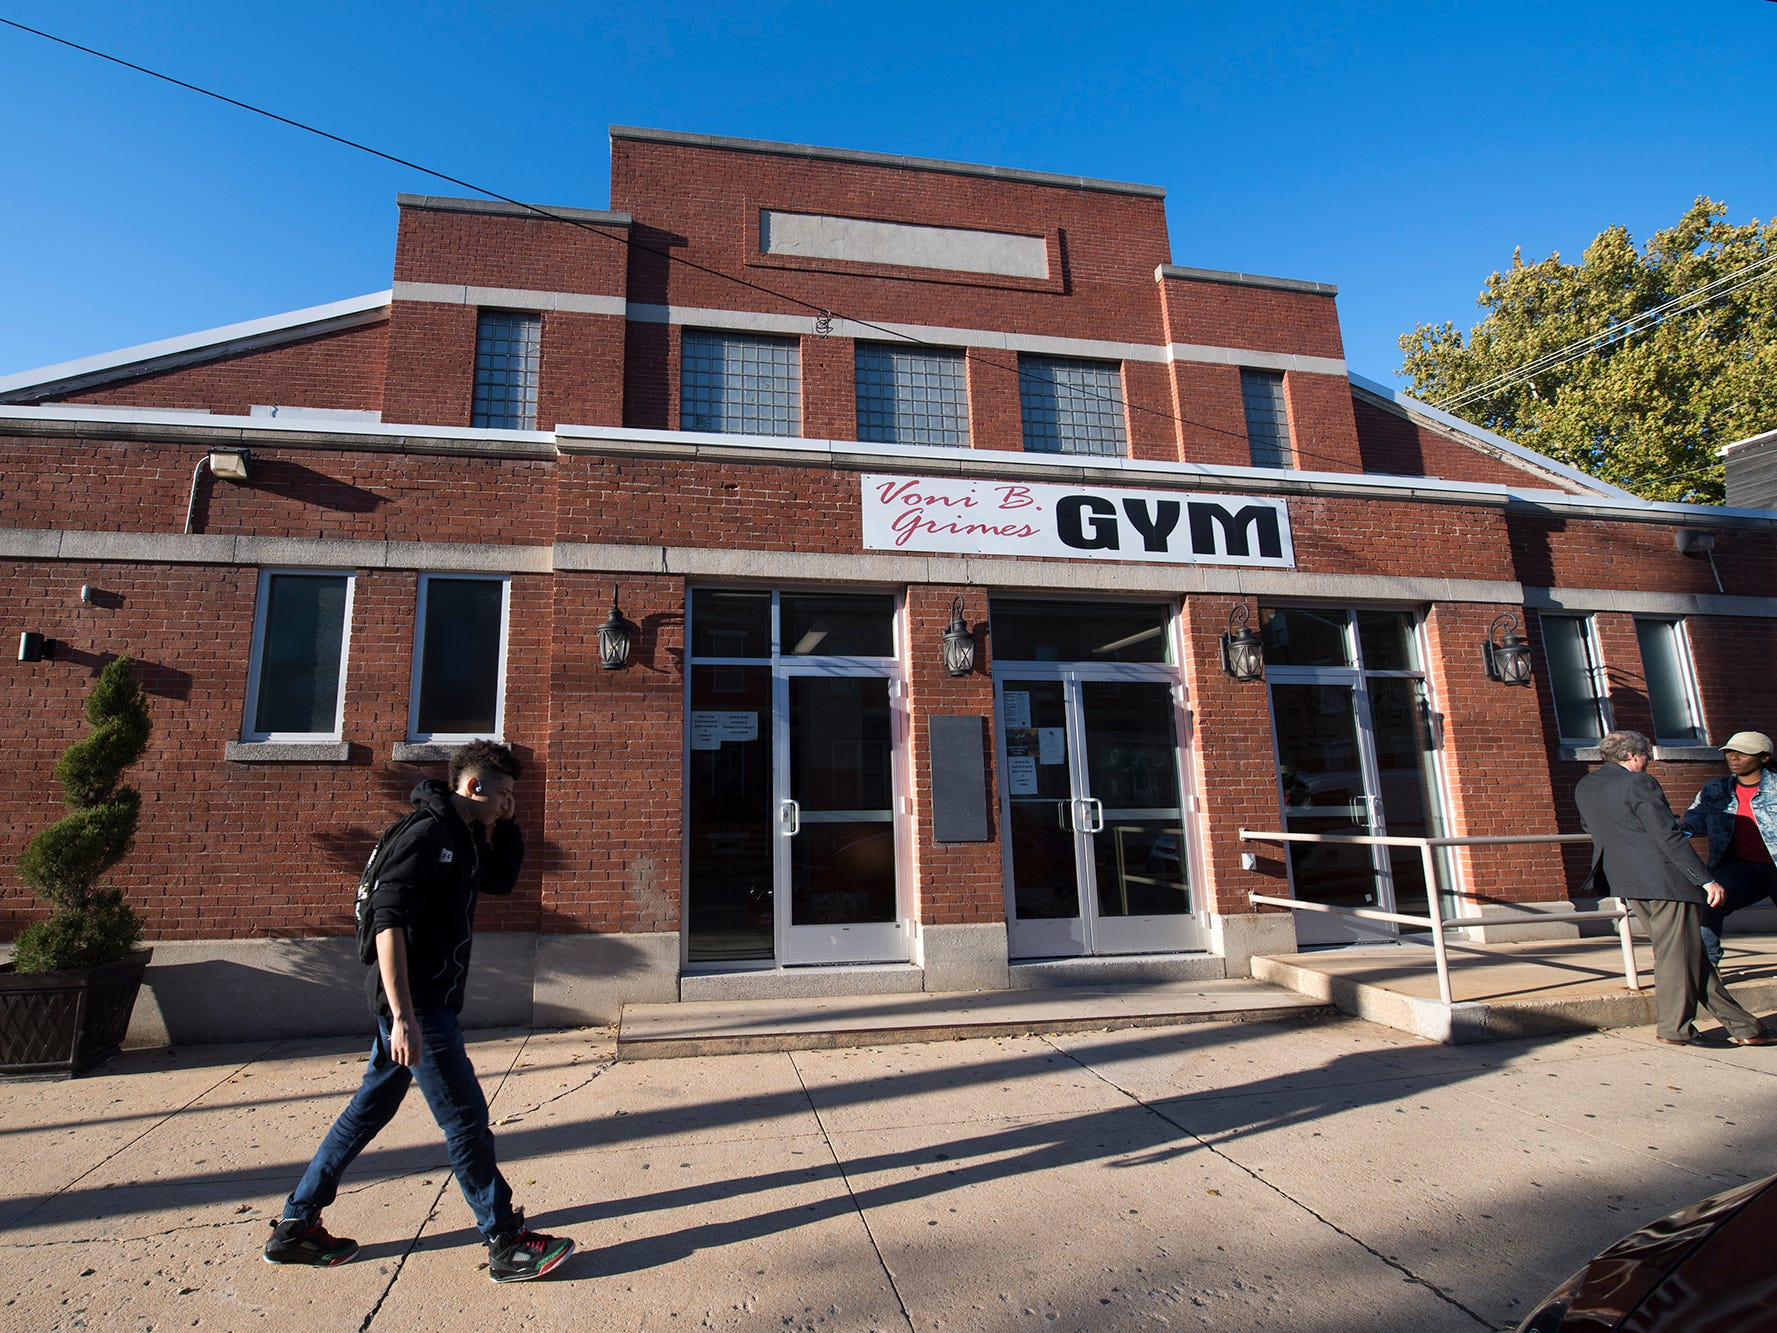 People walk outside of Voni Grimes Gym in York Tuesday. New glass doors replaced old solid doors that were hard to open. ADA accessibility was part of the renovations